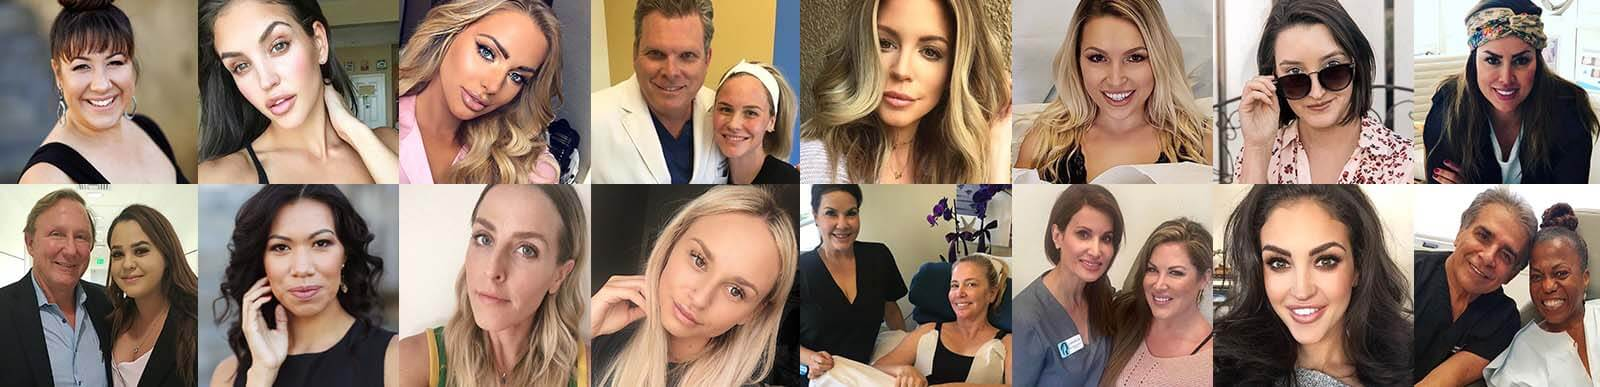 Orange County Plastic Surgery by Top Rated Cosmetic Surgeons